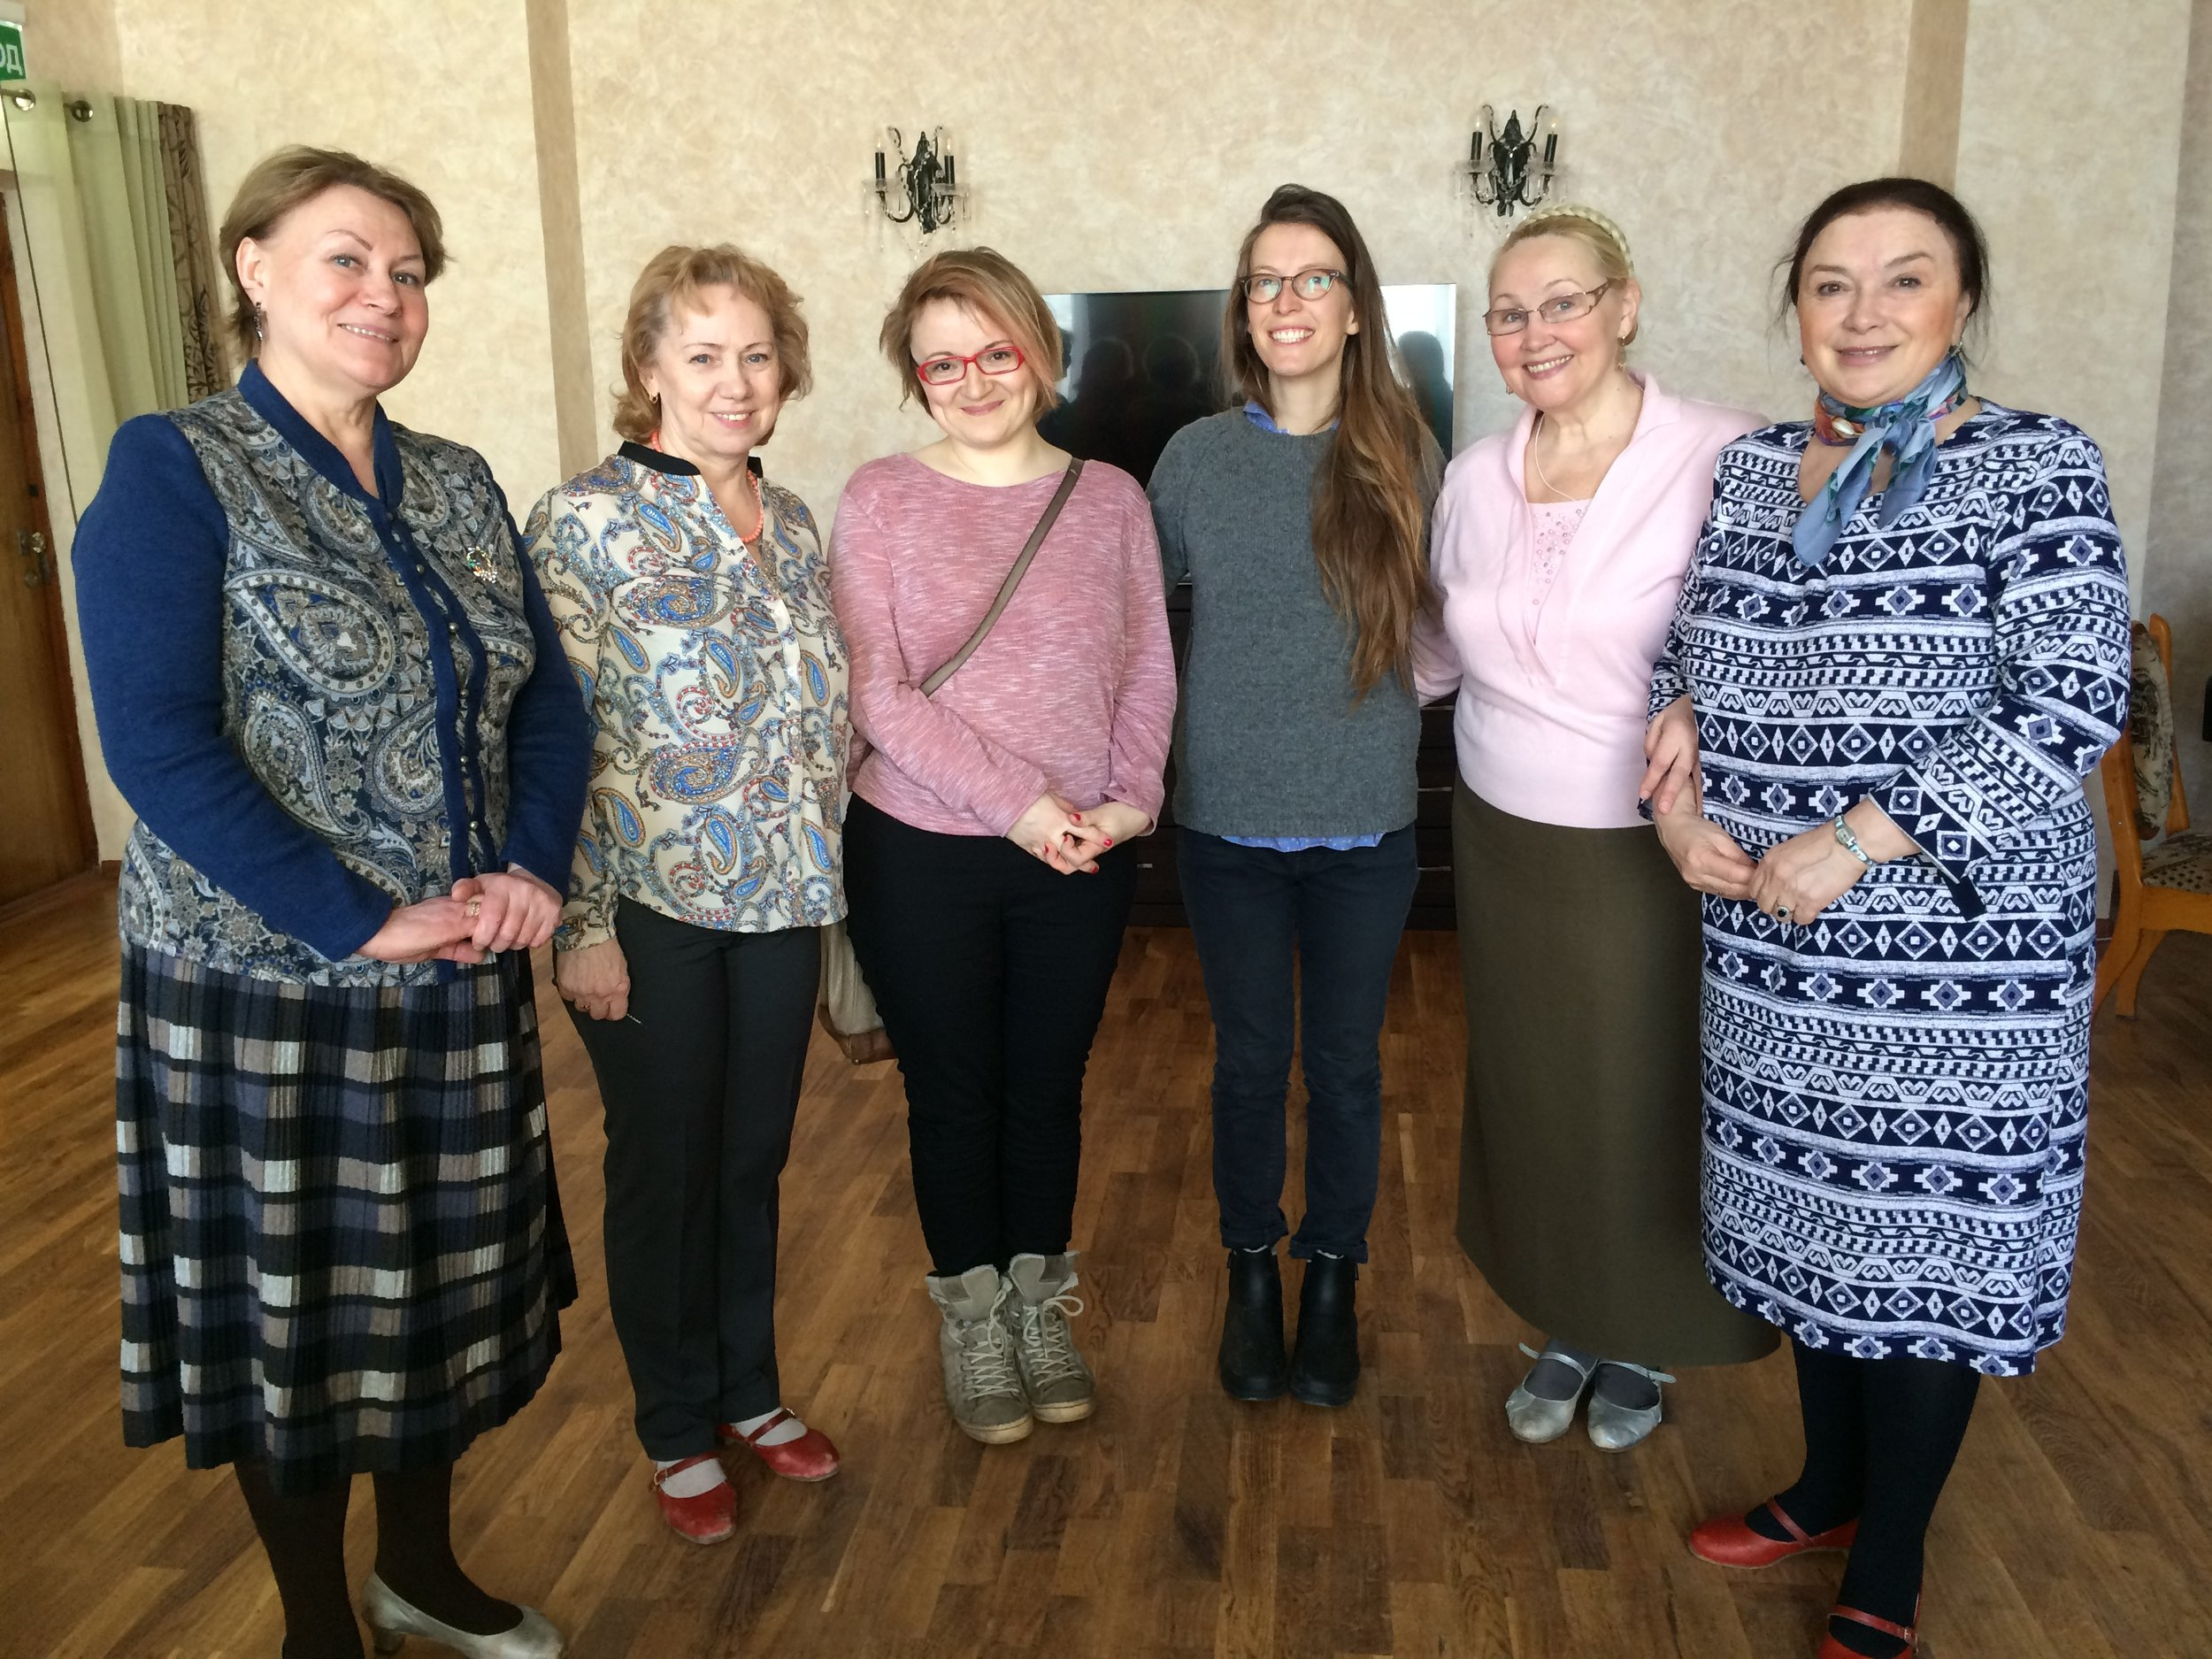 Tatiana Khvastunova, Tatiana Panova, Ekaterina Kharlanova, Tatiana Golvskaya, along with my friend, translator, and amazing guide Ekaterina Sharova, and me. 2017